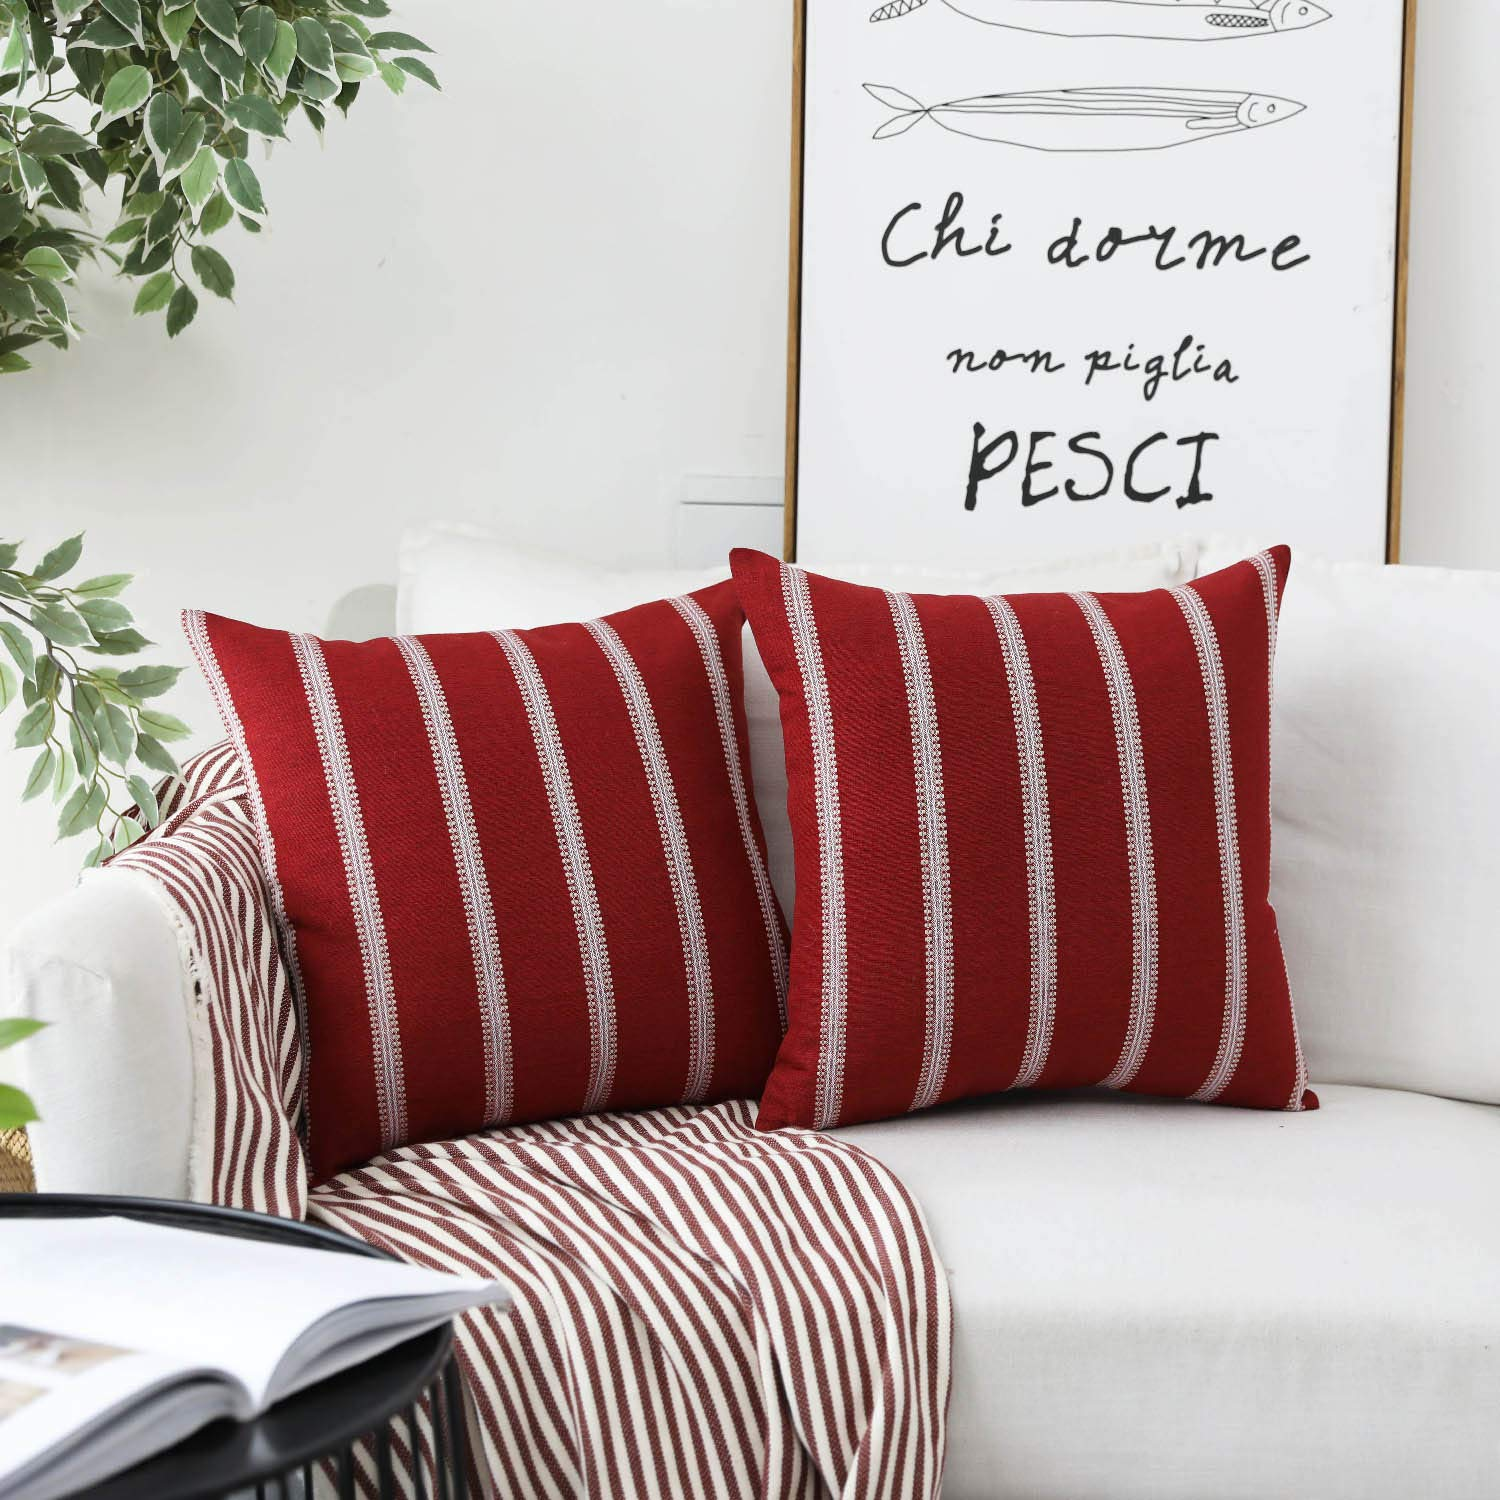 HOME BRILLIANT Modern Farmhouse Cushion Covers Rustic Decor Striped  Decorative Throw Pillow Covers for Couch Bench Sofa, Set of 2, 18 x 18 ...